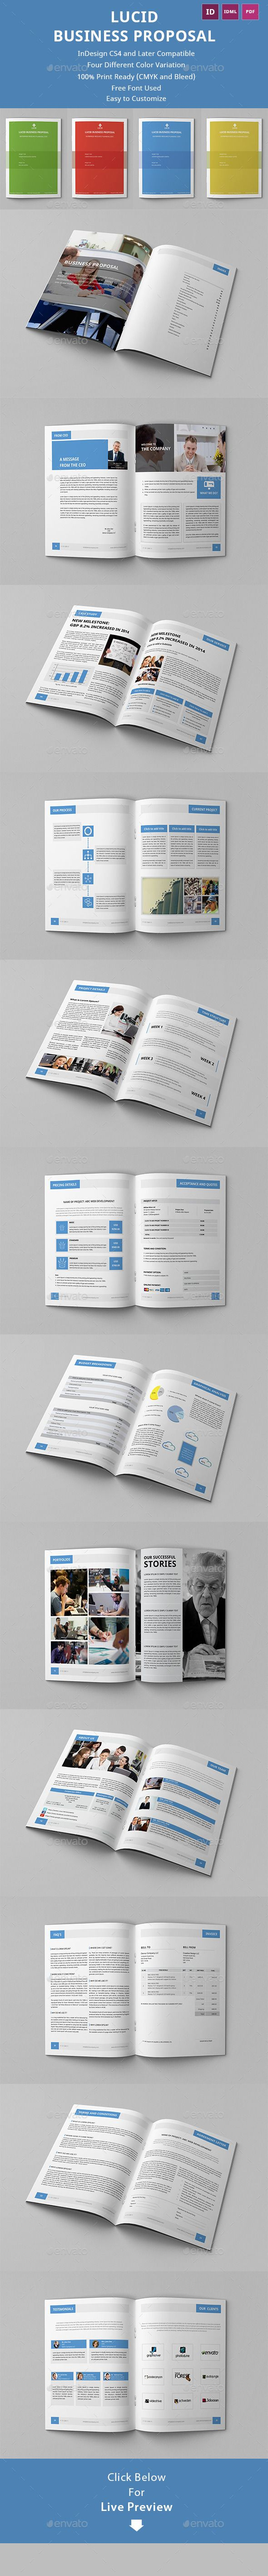 Lucid Business Proposal Template | Download: http://graphicriver.net/item/lucid-business-proposal-template/10197560?ref=ksioks